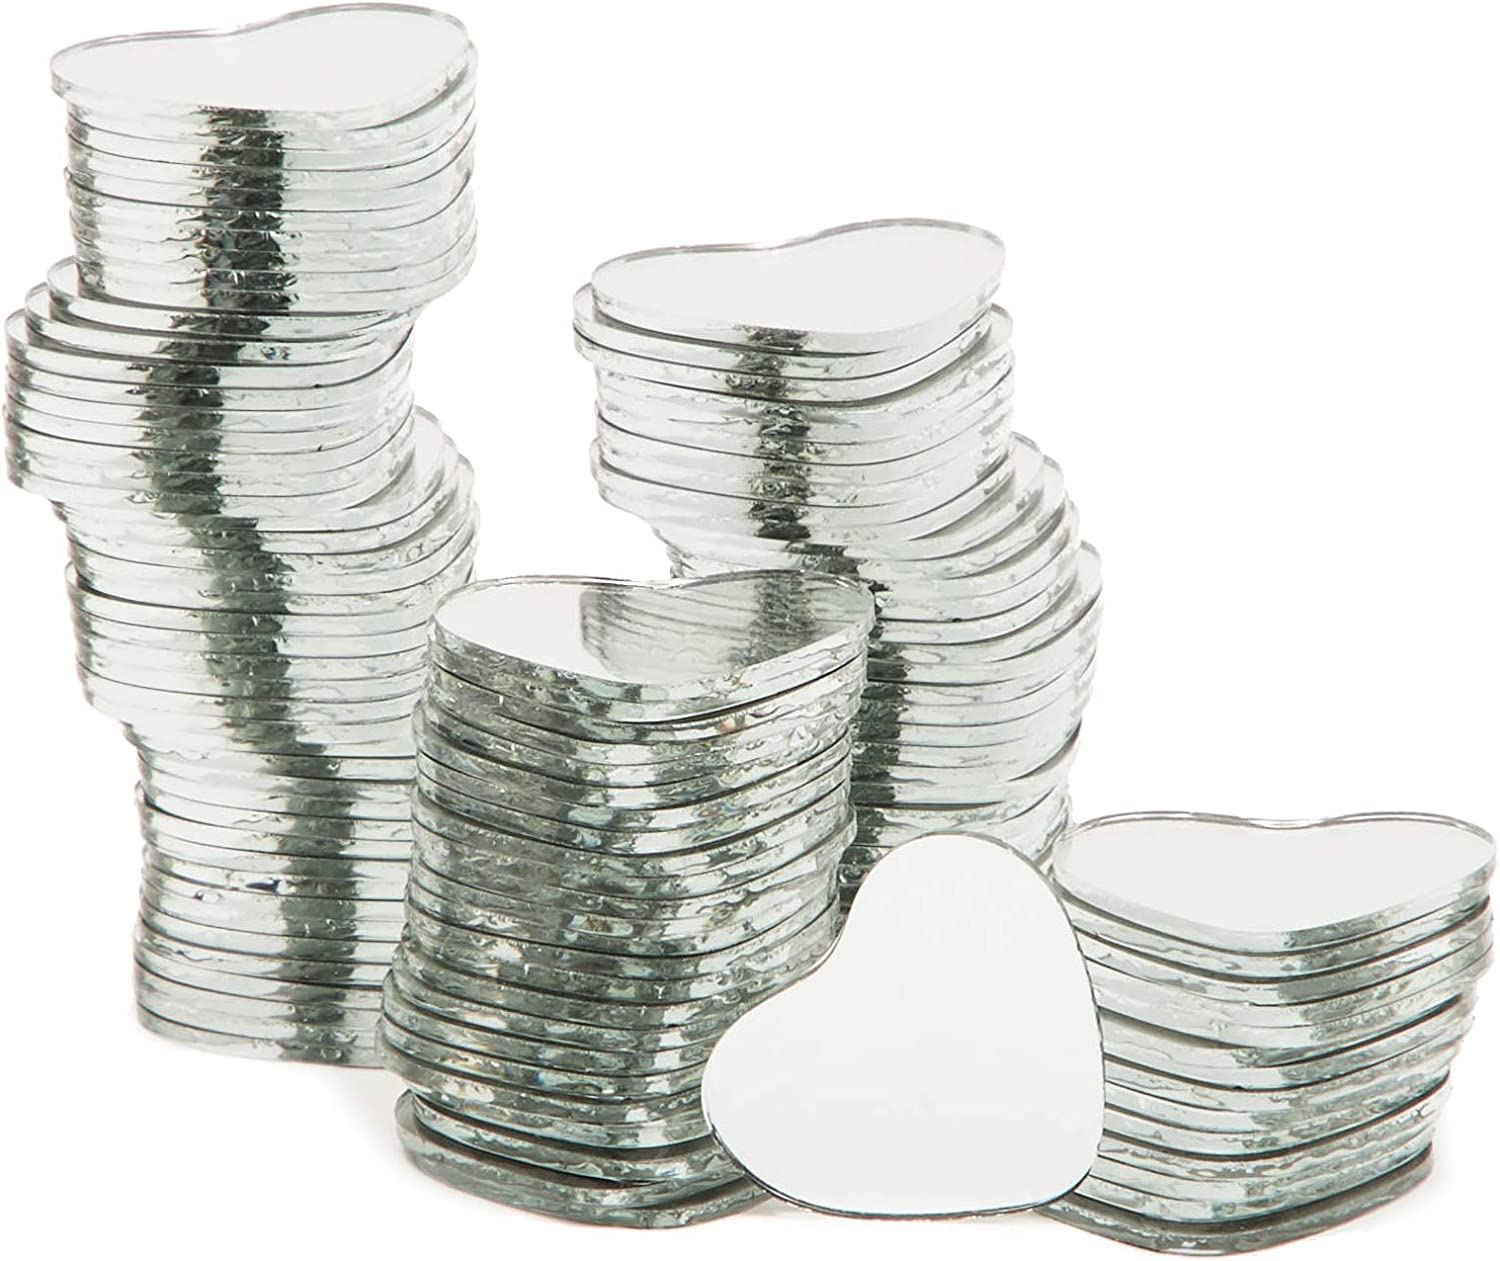 Heart Mirror Tiles, Mirrors for Crafts and DIY (1 Inch, 120 Pack)